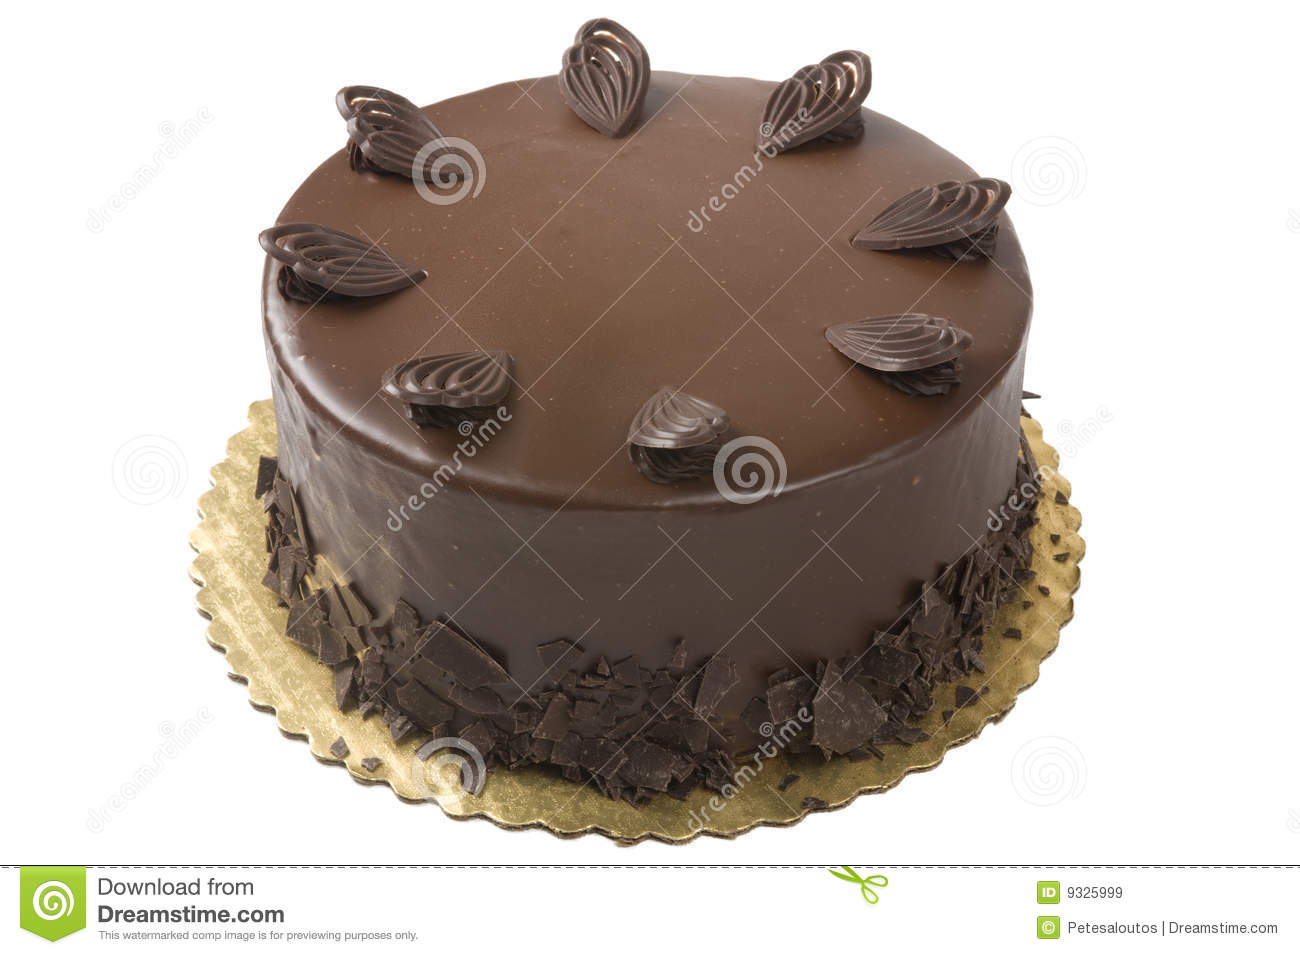 Fancy Chocolate Cake Images : Gourmet Chocolate Cake Royalty Free Stock Images - Image ...